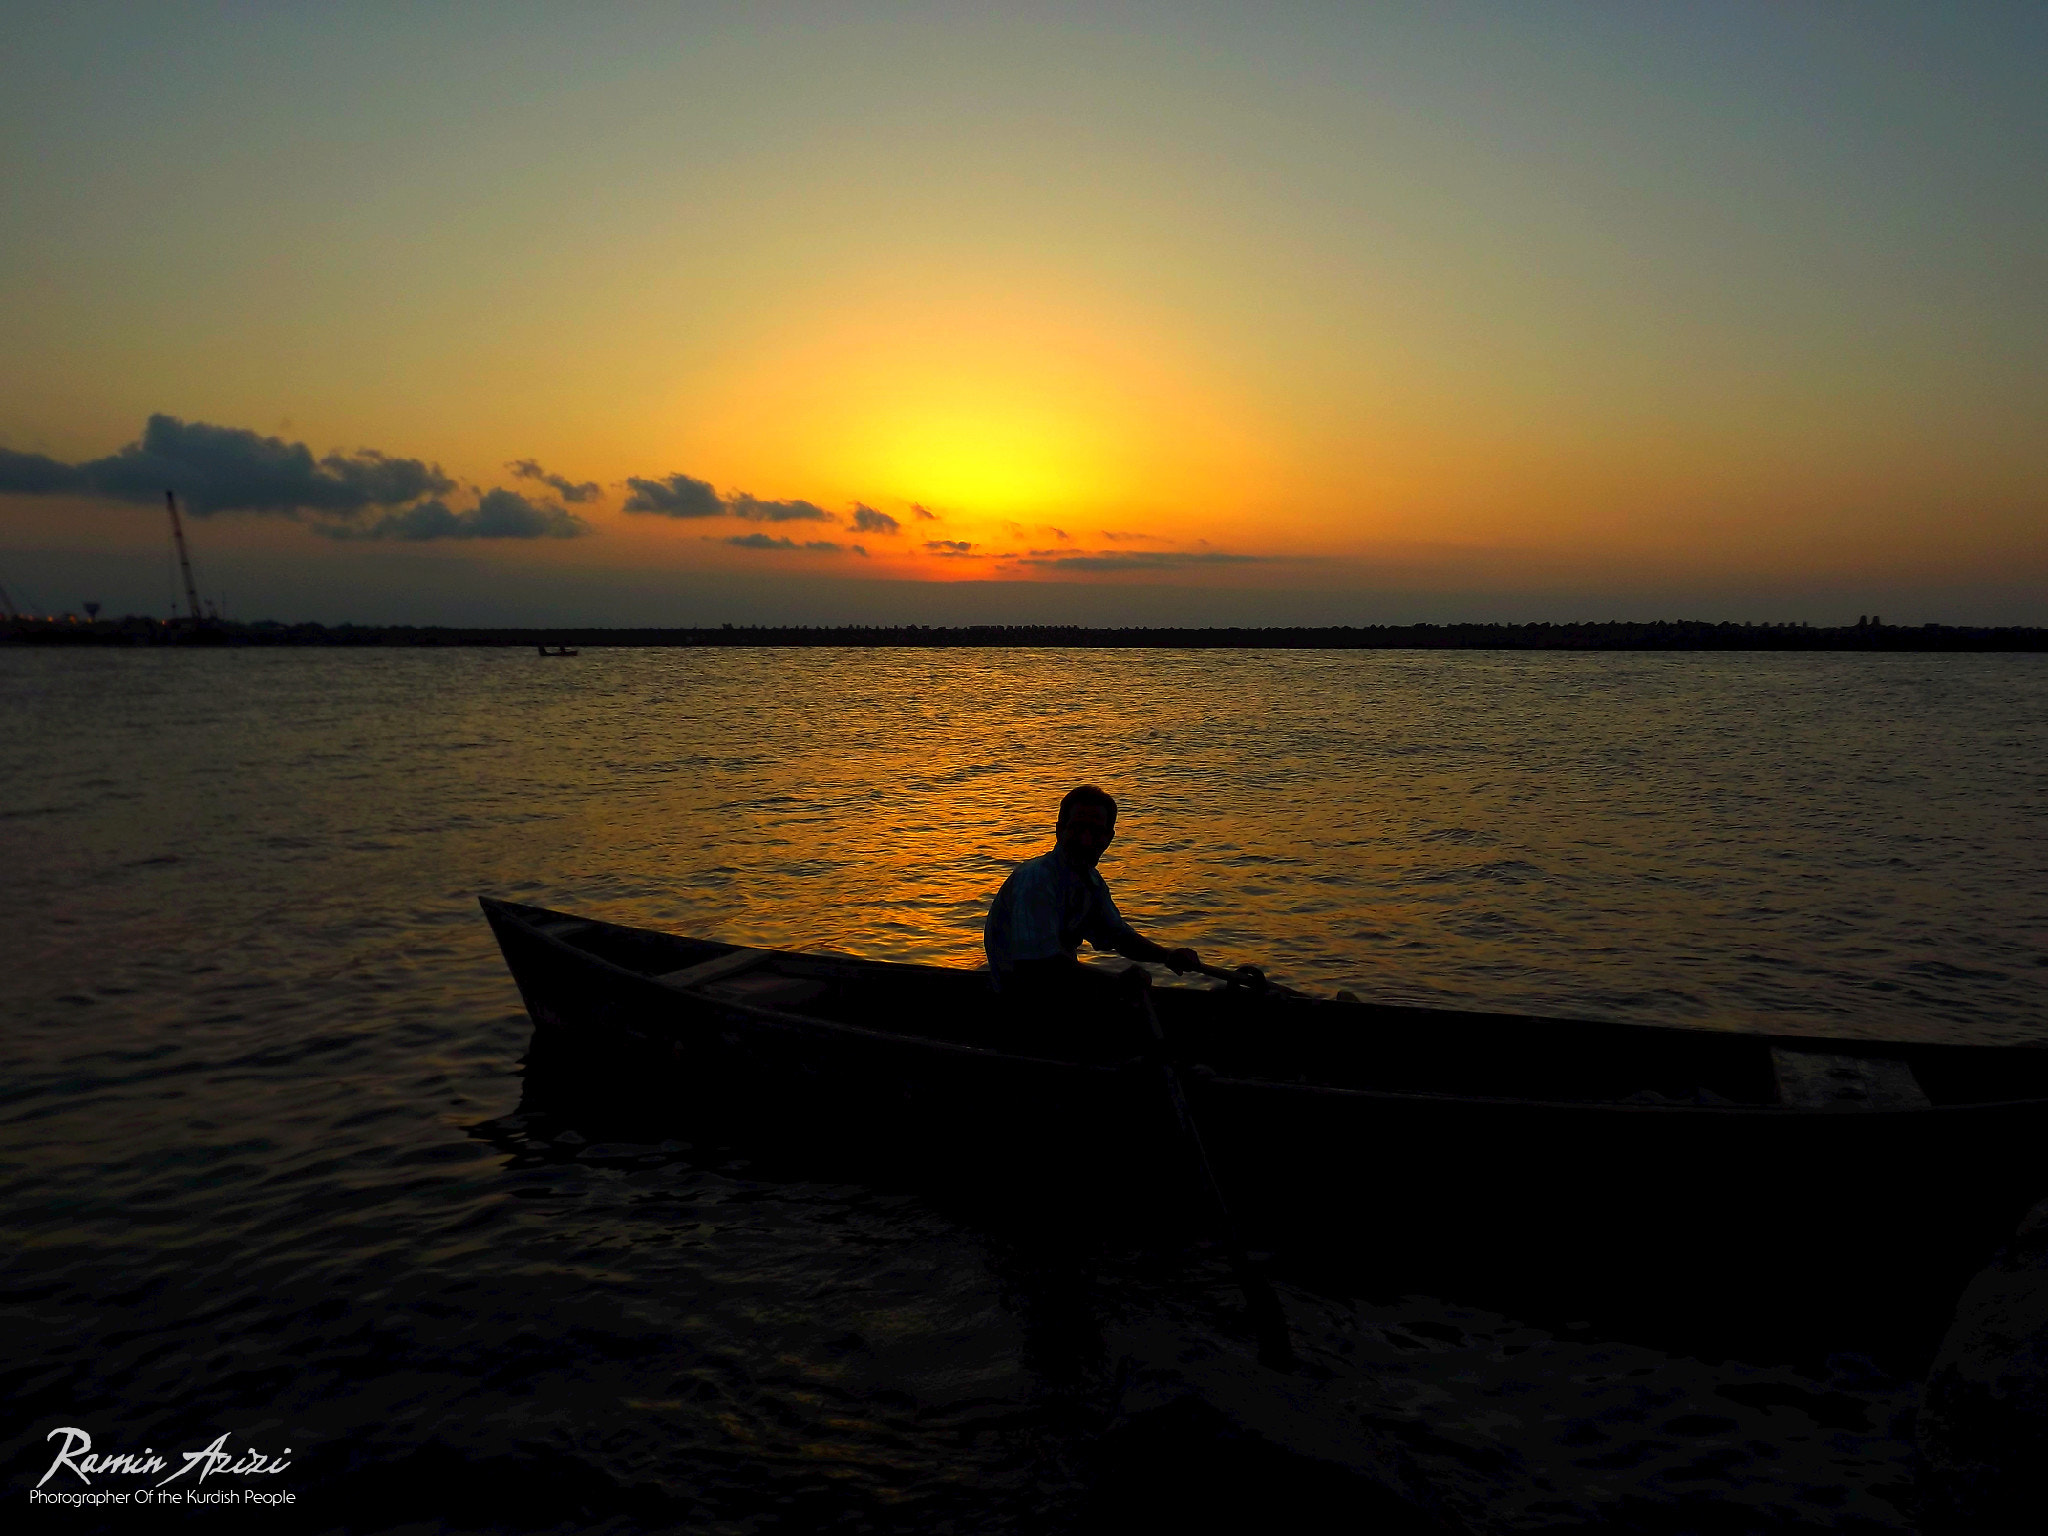 Photograph The quiet life by ramin azizi on 500px